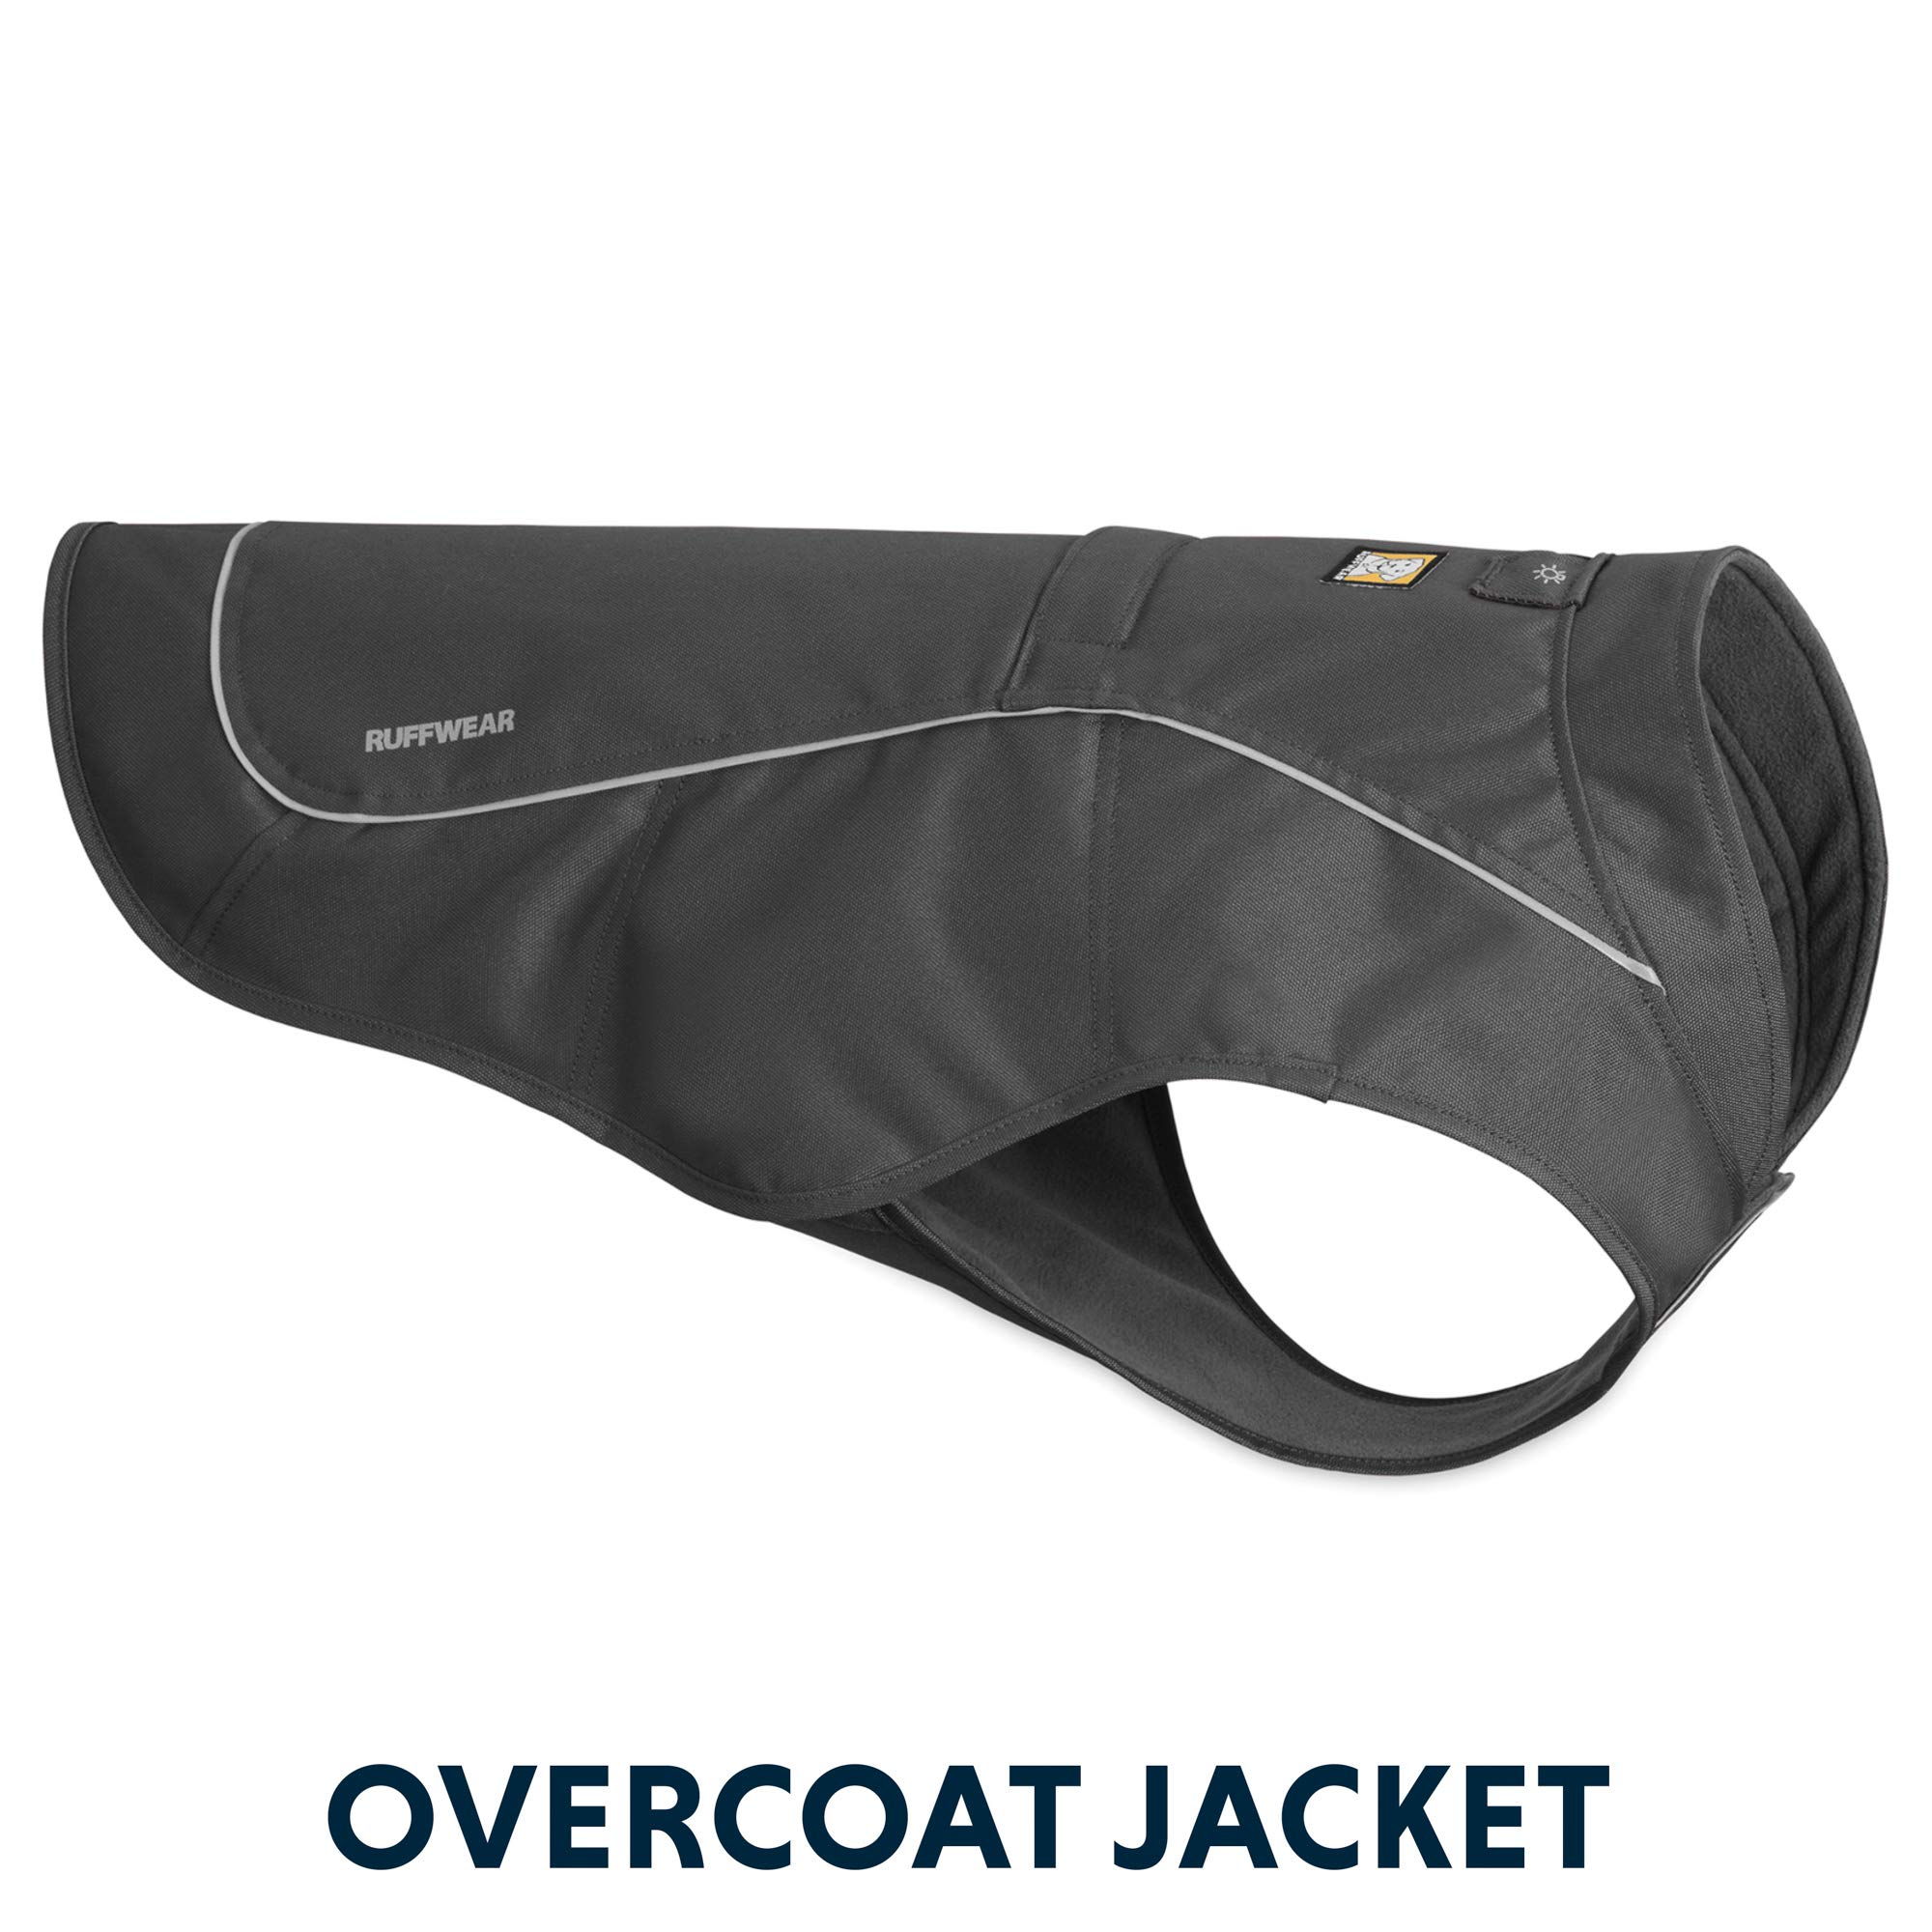 RUFFWEAR - Overcoat Fleece Lined Water Resistant Cold Weather Jacket for Dogs, Twilight Gray, Small by RUFFWEAR (Image #1)